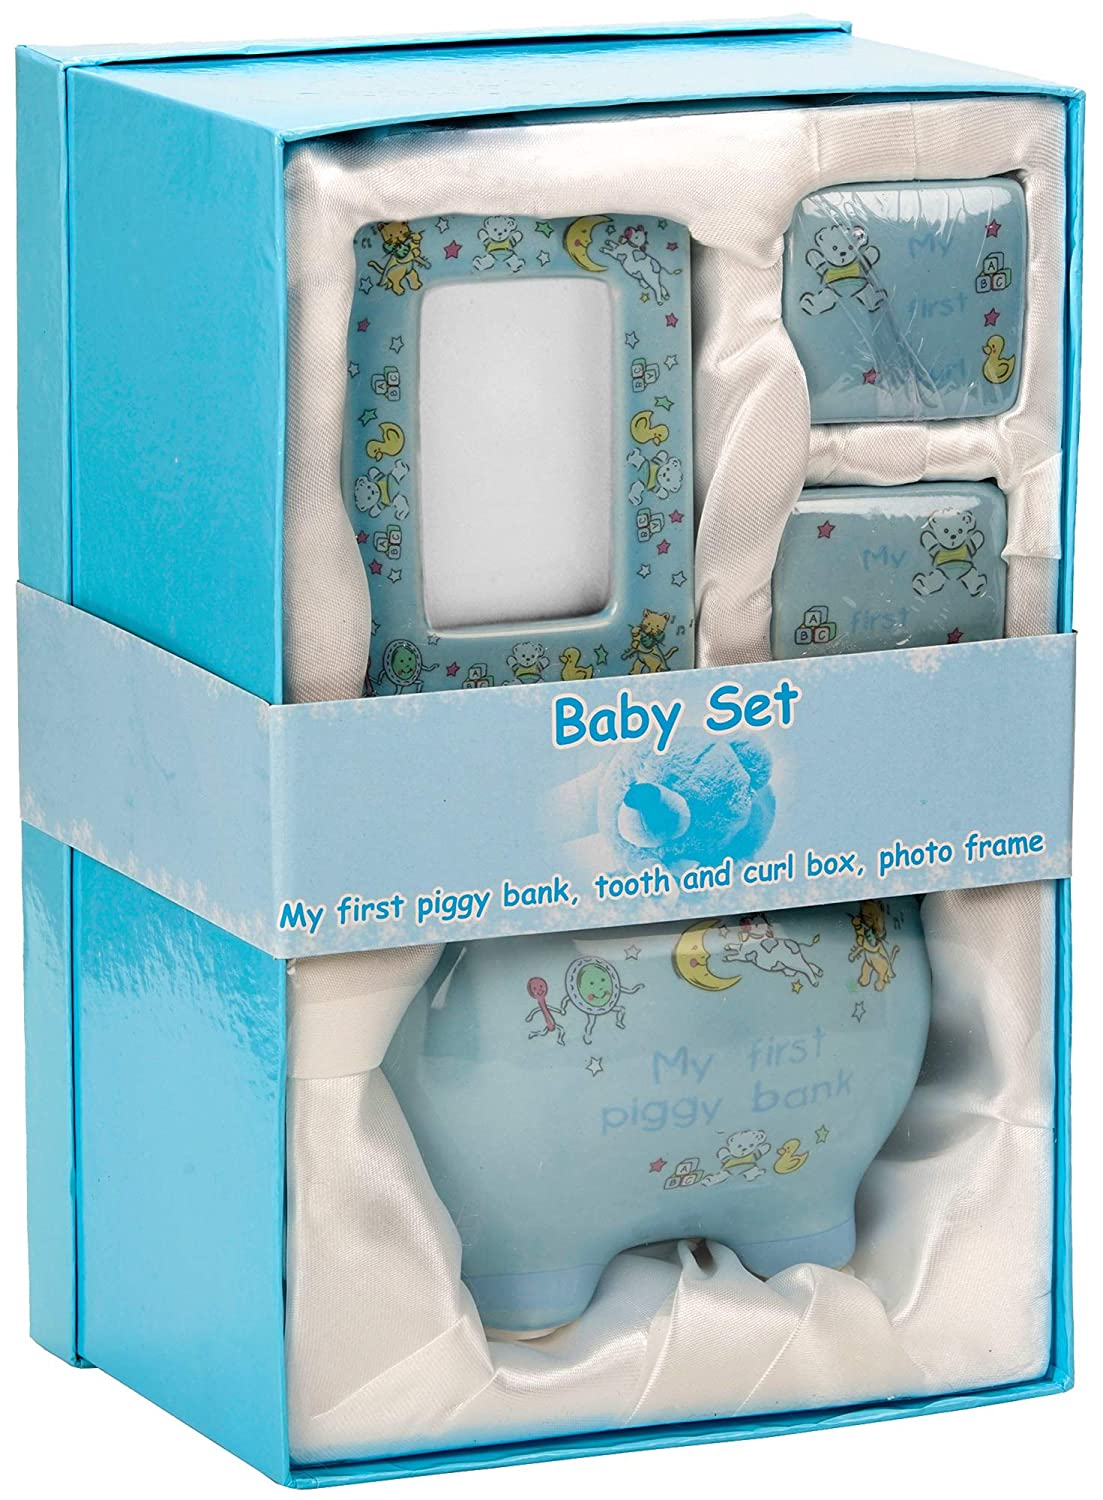 BRUBAKER My First Piggy Bank Gift Set for Baby Boy – 4 Pcs Keepsake Gift Set Includes Piggy Bank, First Curl, First Tooth and Photo Frame – Blue